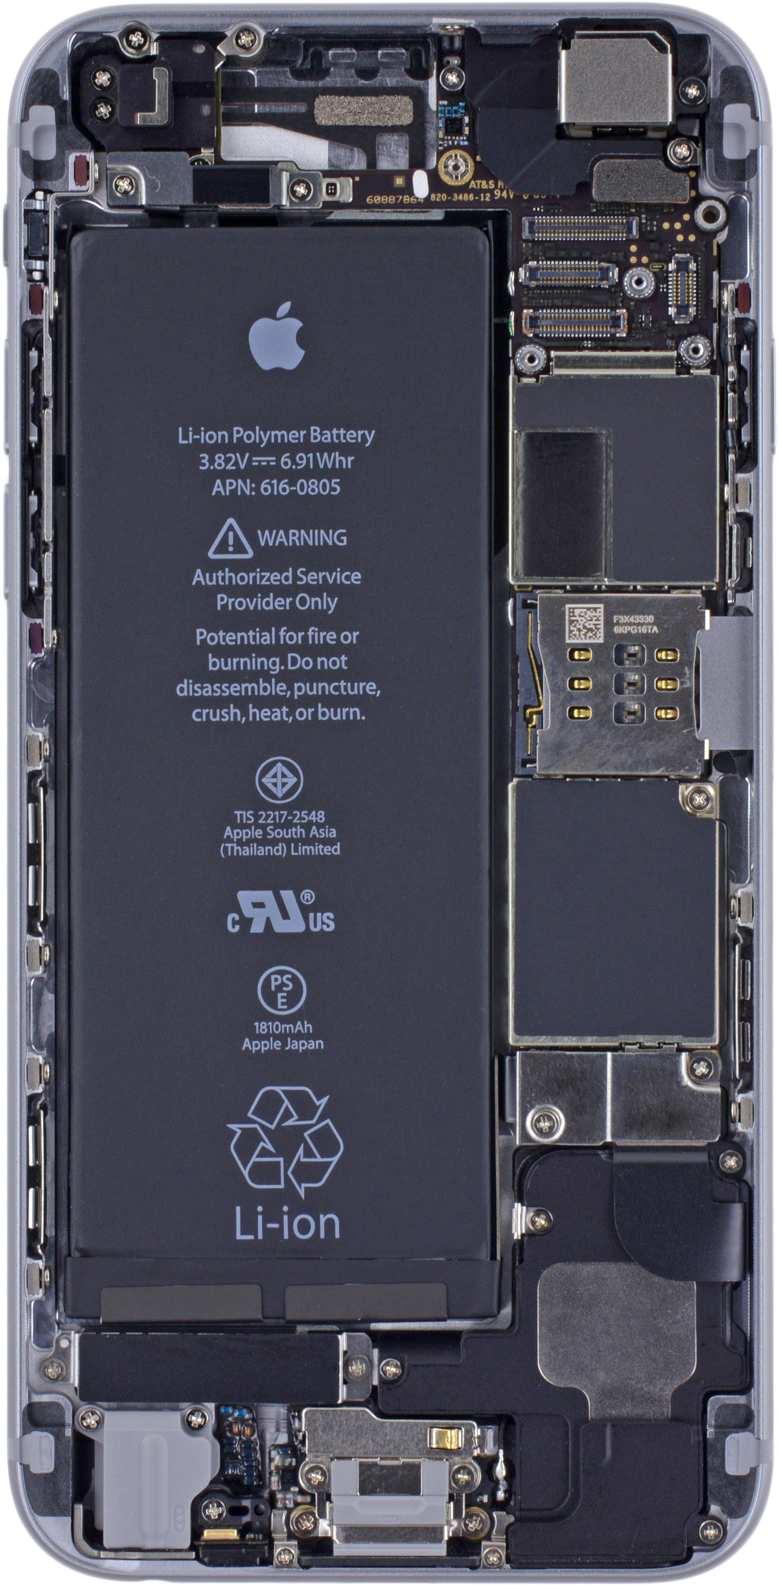 Download X Ray Vision Internals Wallpaper For The   Iphone 21 Plus ...